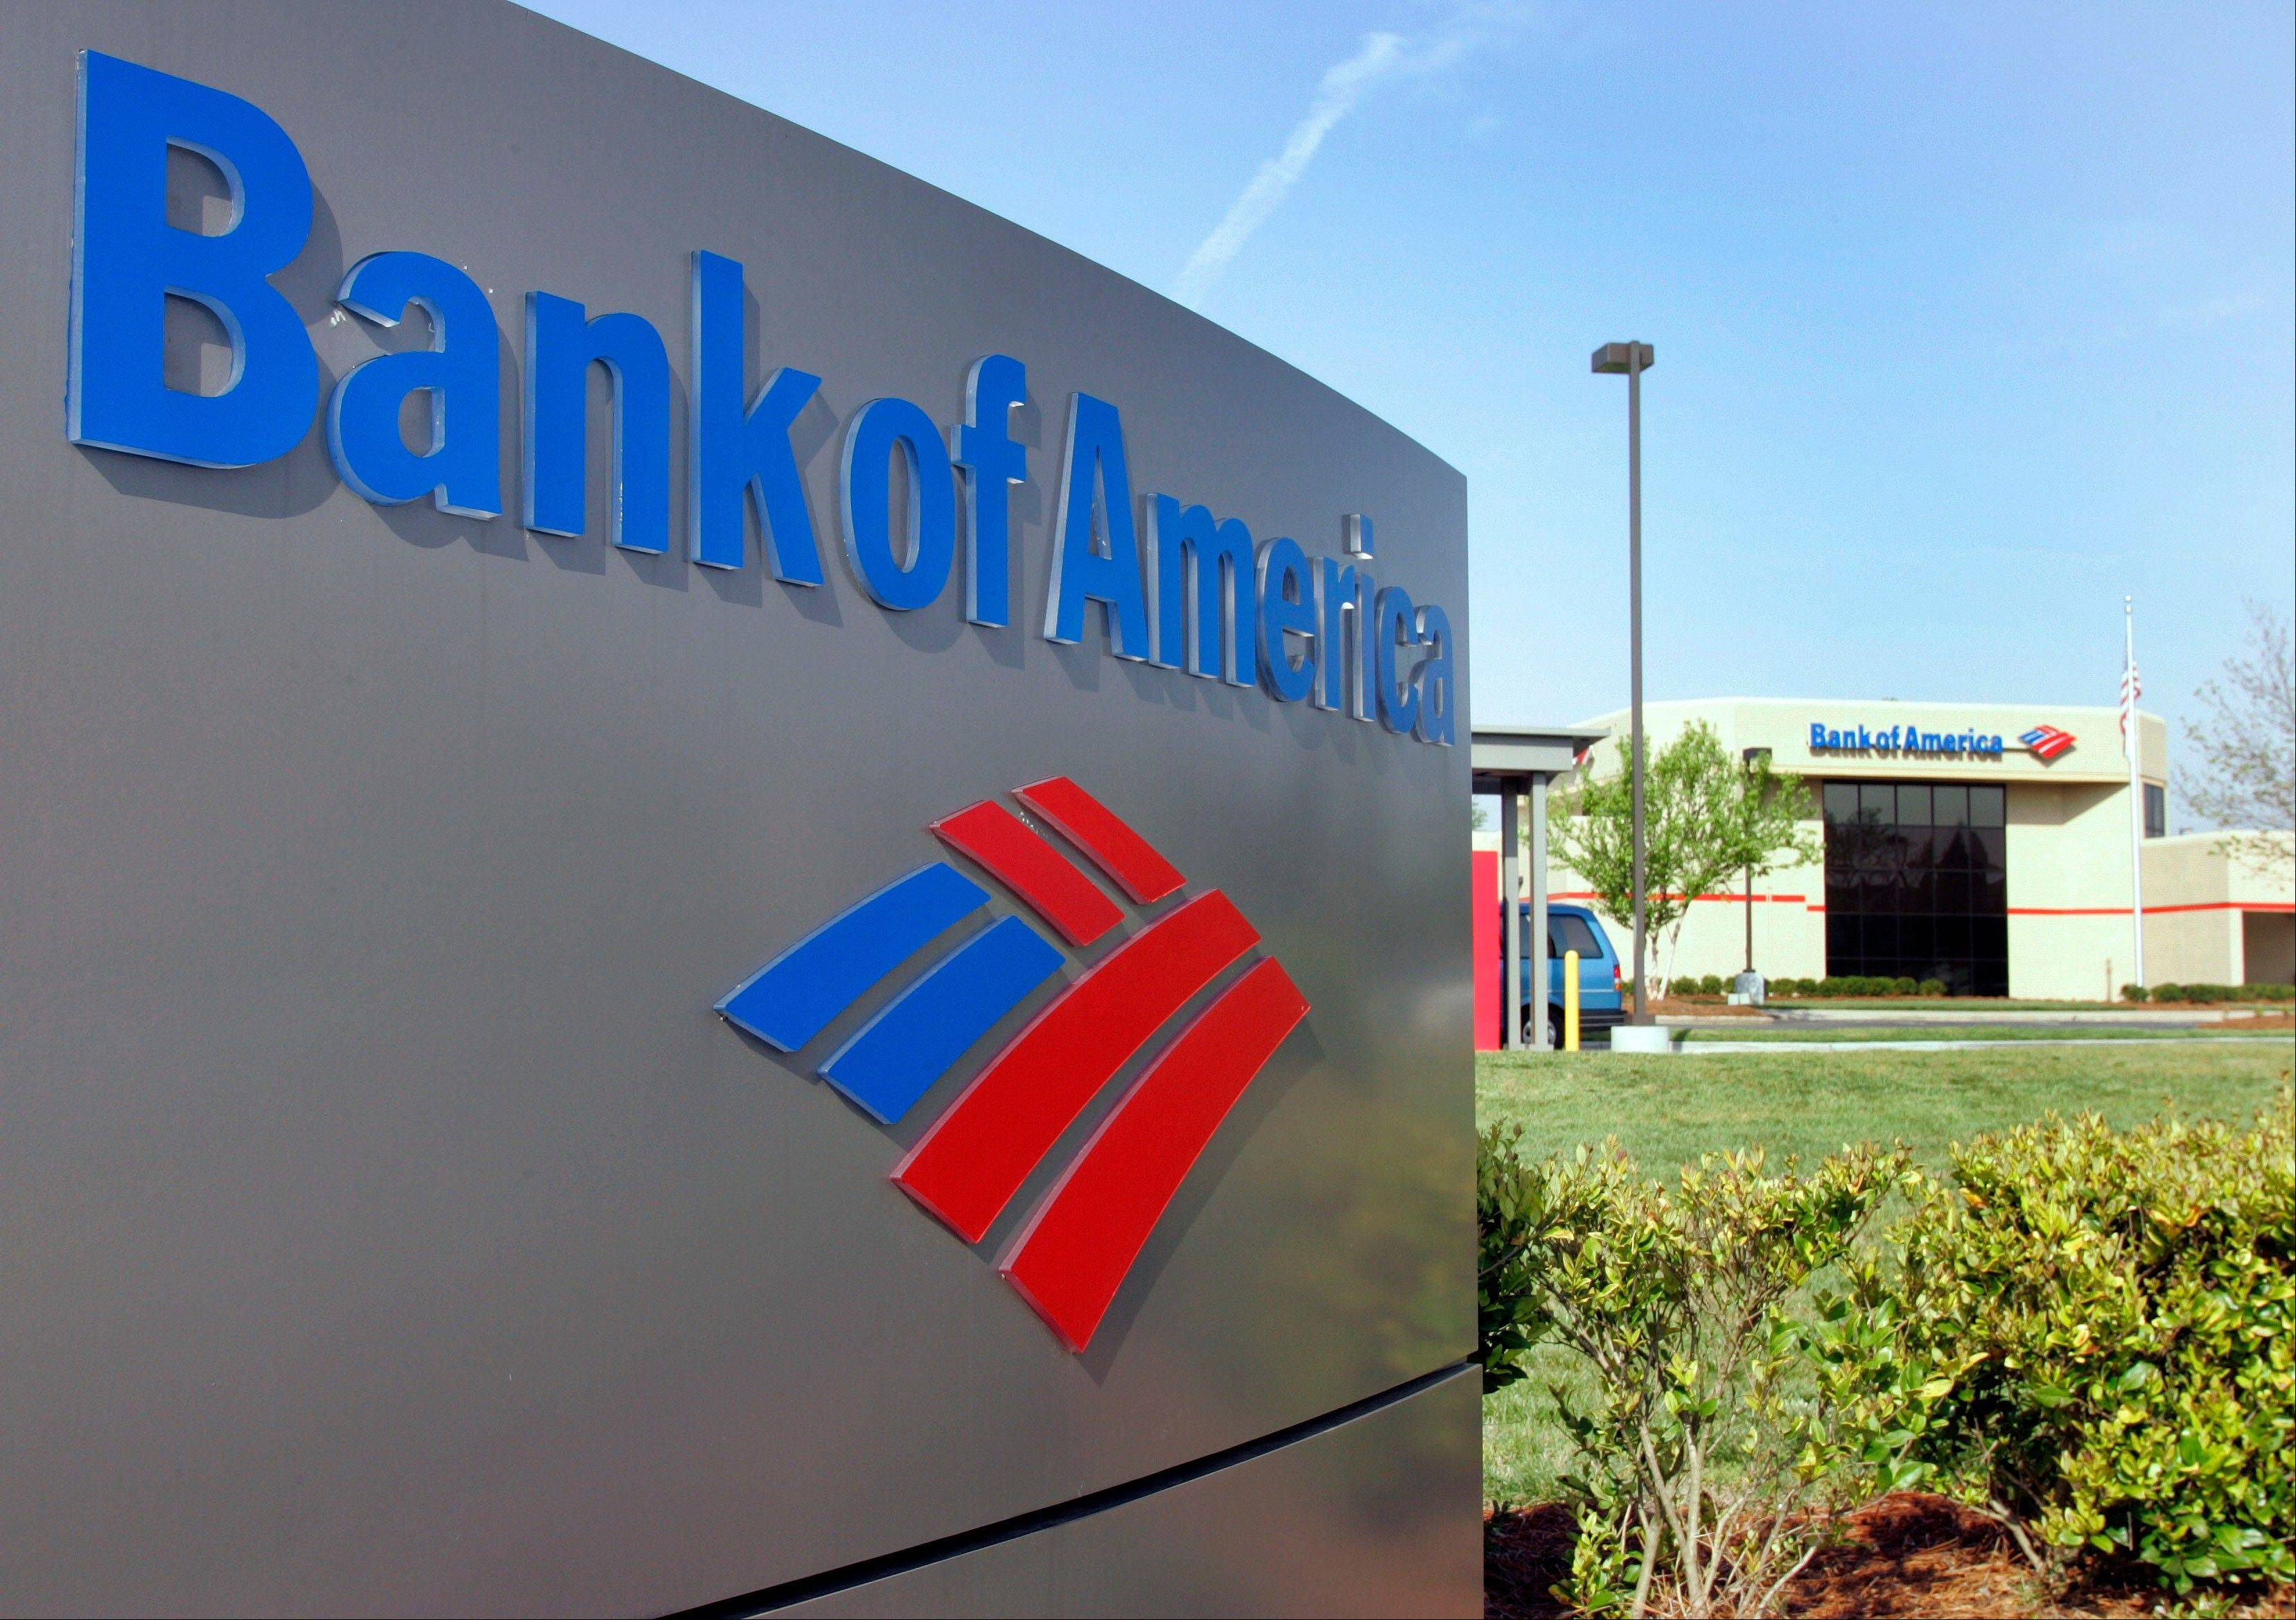 Bank of America says it will spend more than $10 billion to settle mortgage claims resulting from the housing meltdown. Under the deal announced Monday, the bank will pay $3.6 billion to Fannie Mae and buy back $6.75 billion in loans that the North Carolina-based bank and its Countrywide banking unit sold to the government agency from Jan. 1, 2000 through Dec. 31, 2008.